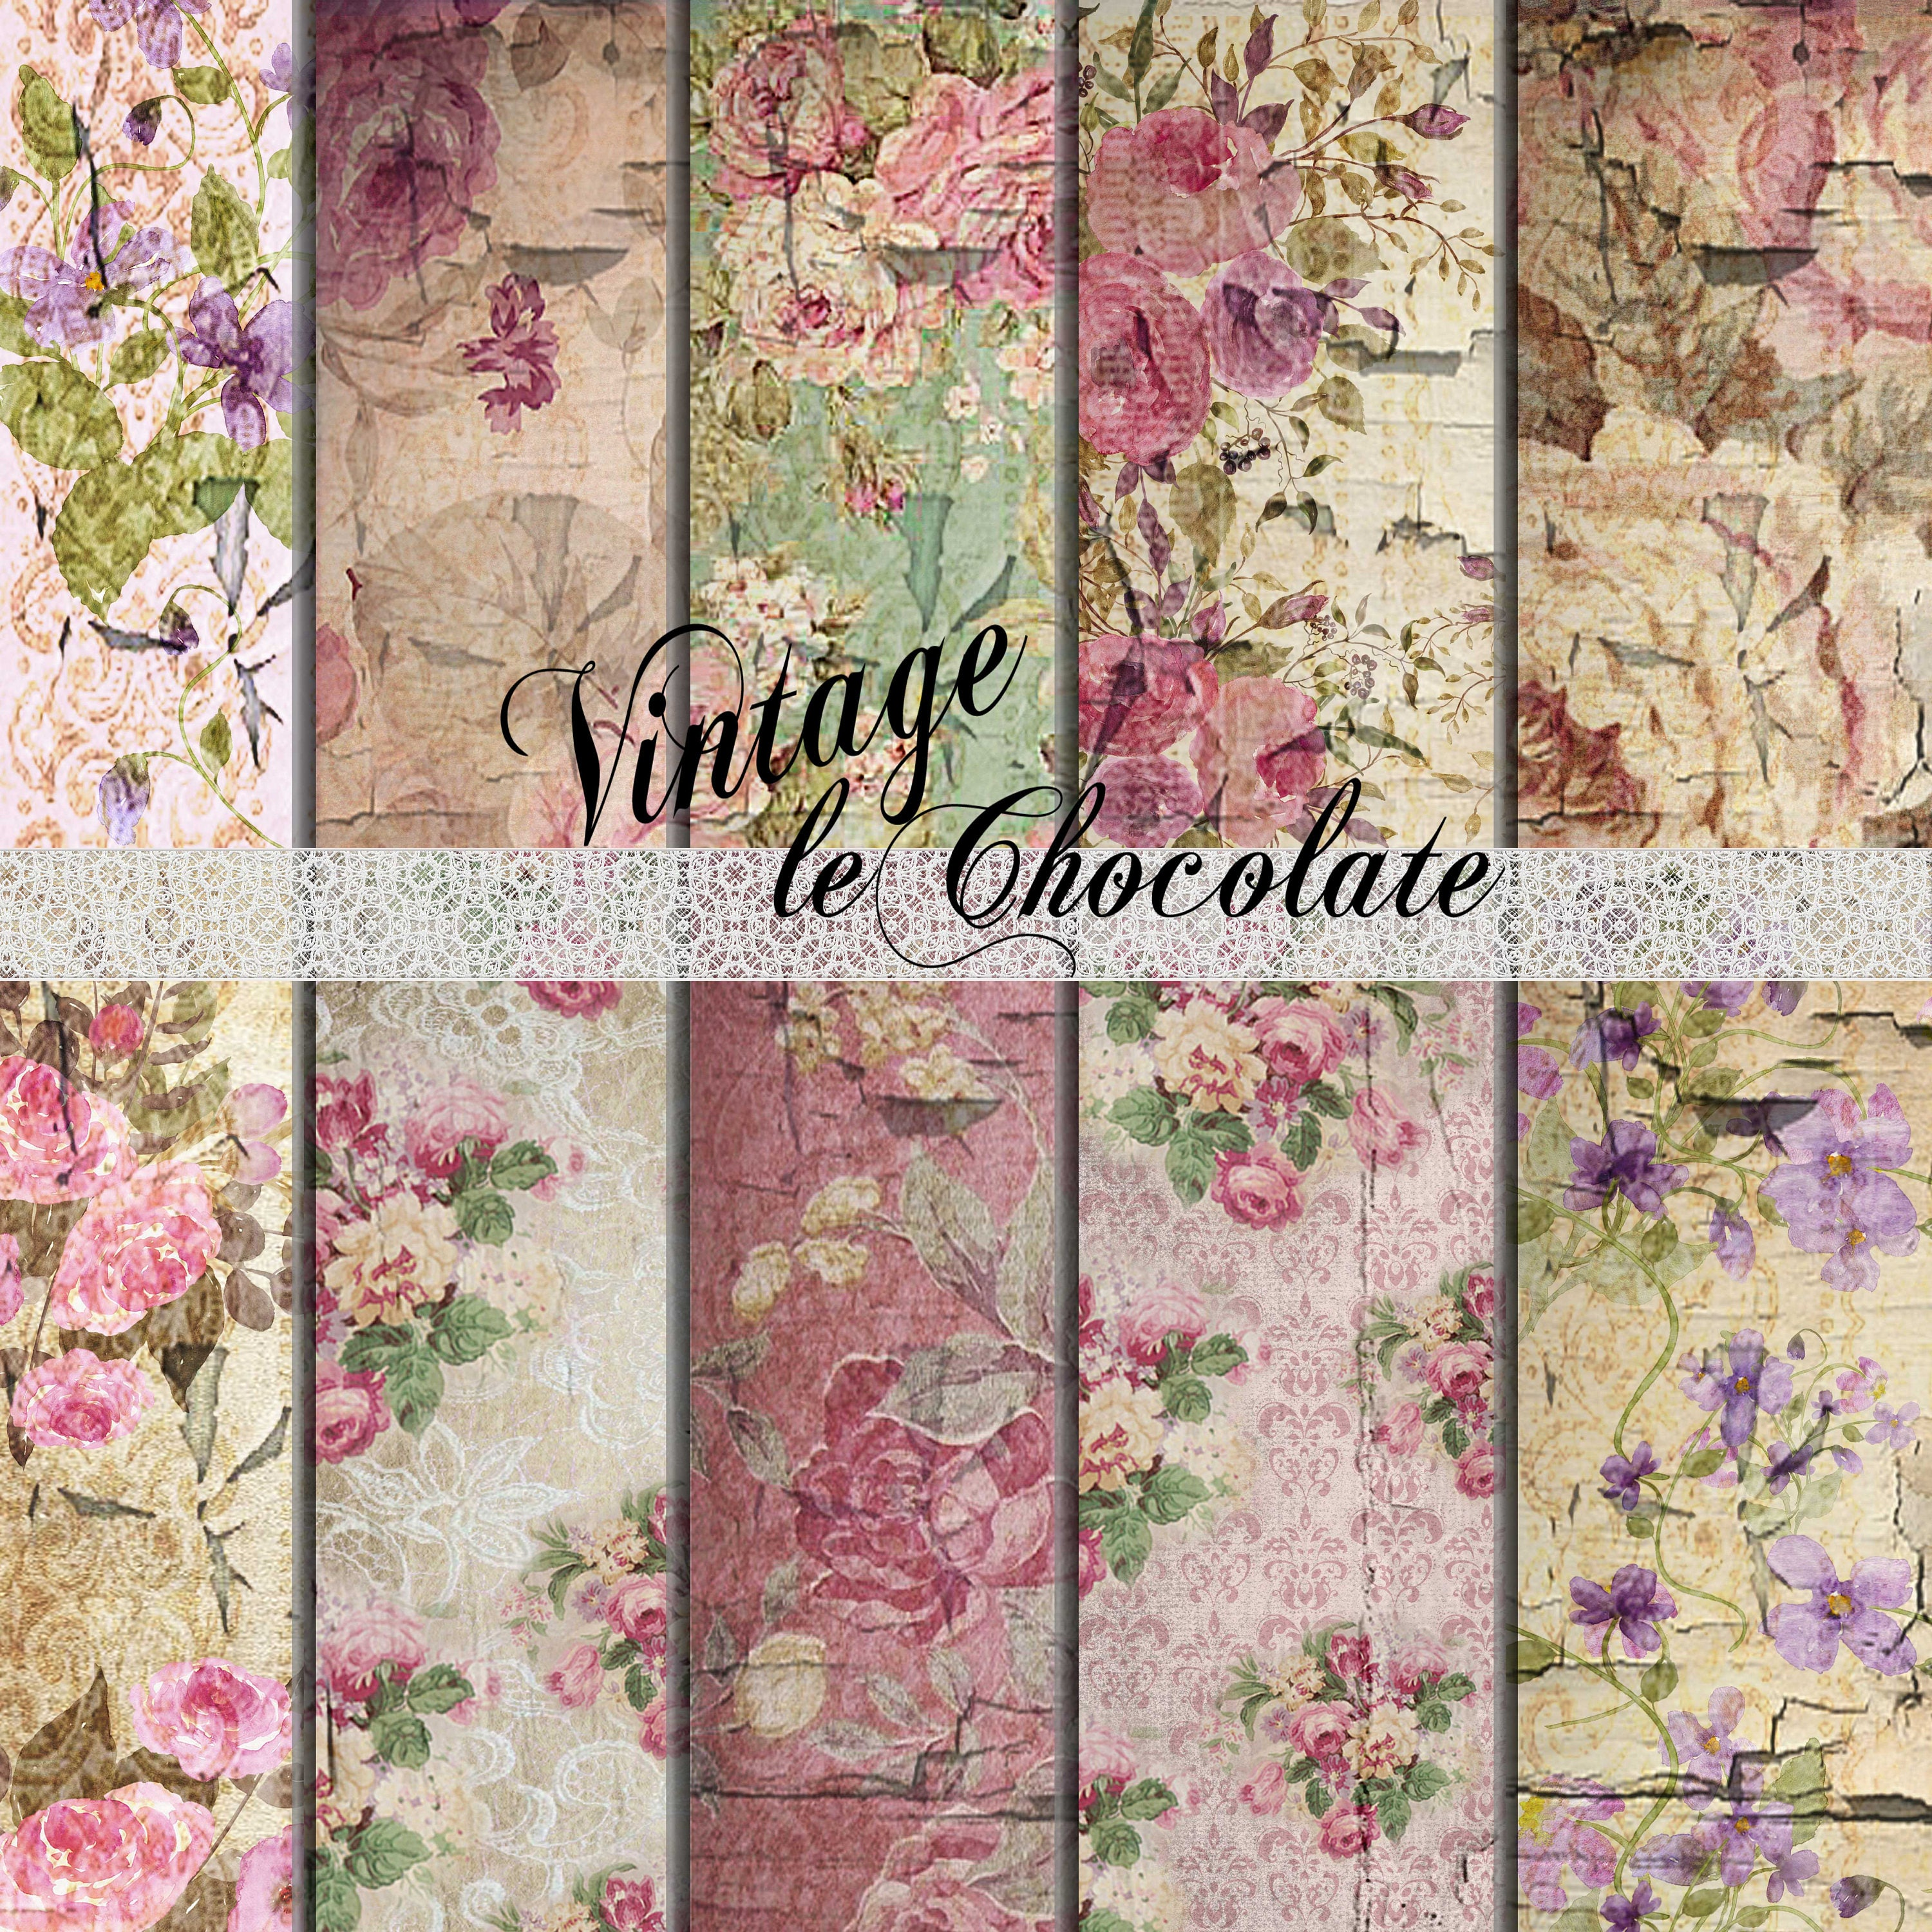 Scrapbook paper as wallpaper - This Is A Digital File